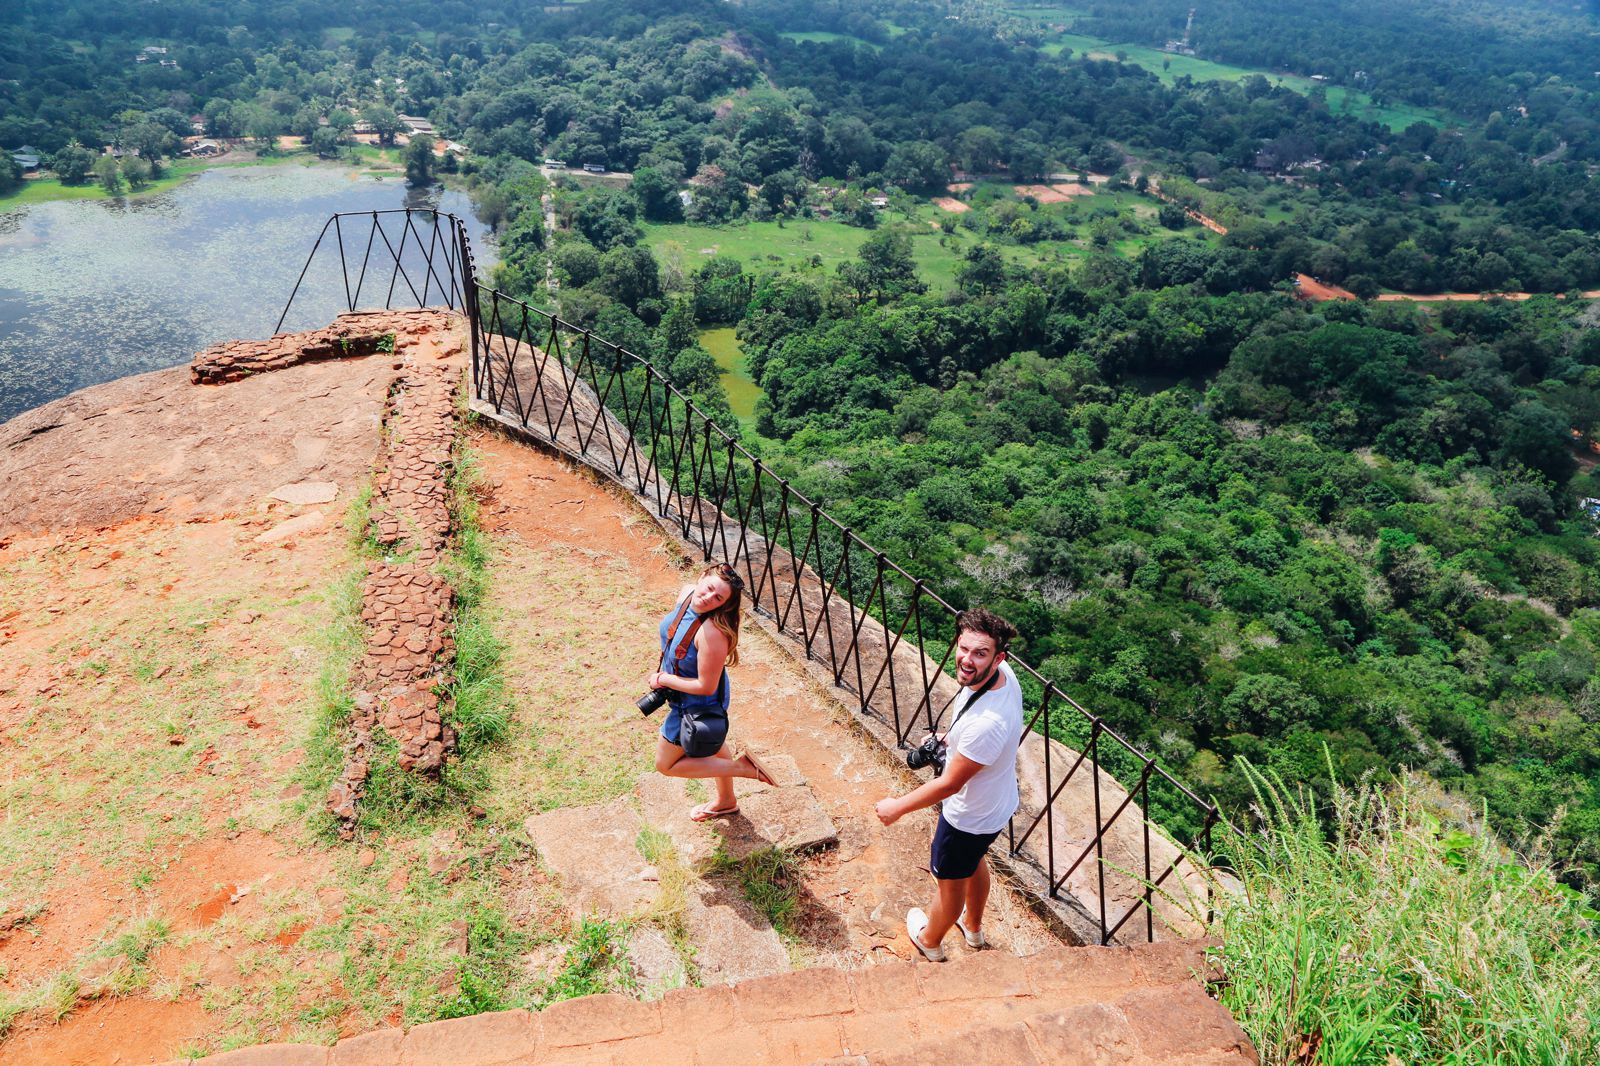 The Complete Guide To Climbing Sri Lanka's UNESCO World Heritage Site Of Sigiriya - Lion Rock (48)